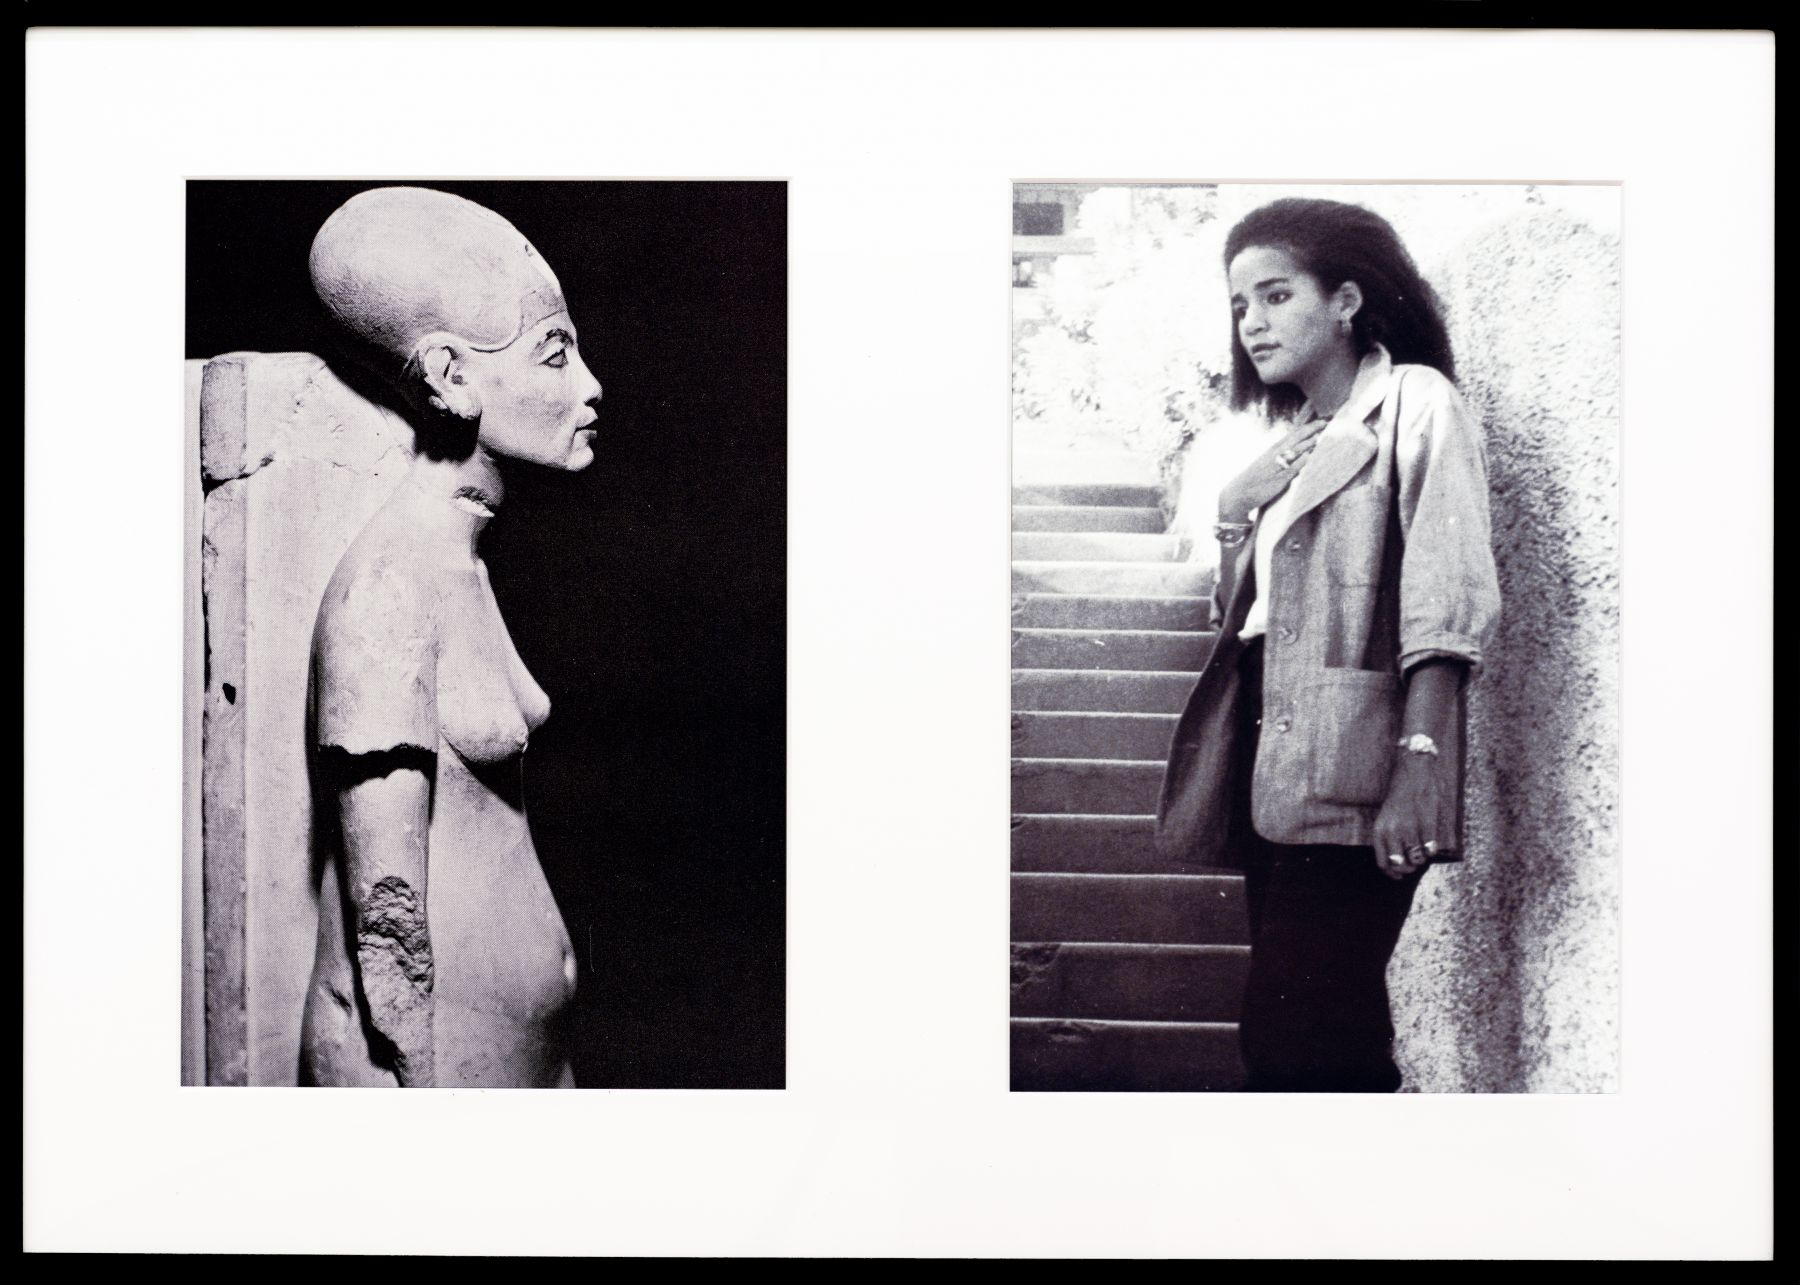 Miscegenated Family Album (Cross Generational), L: Nefertiti, the last image; R: Devonia's youngest daughter, Kimberley, 1980/1994, Cibachrome prints, 26h x 37w in (66.04h x 93.98w cm)